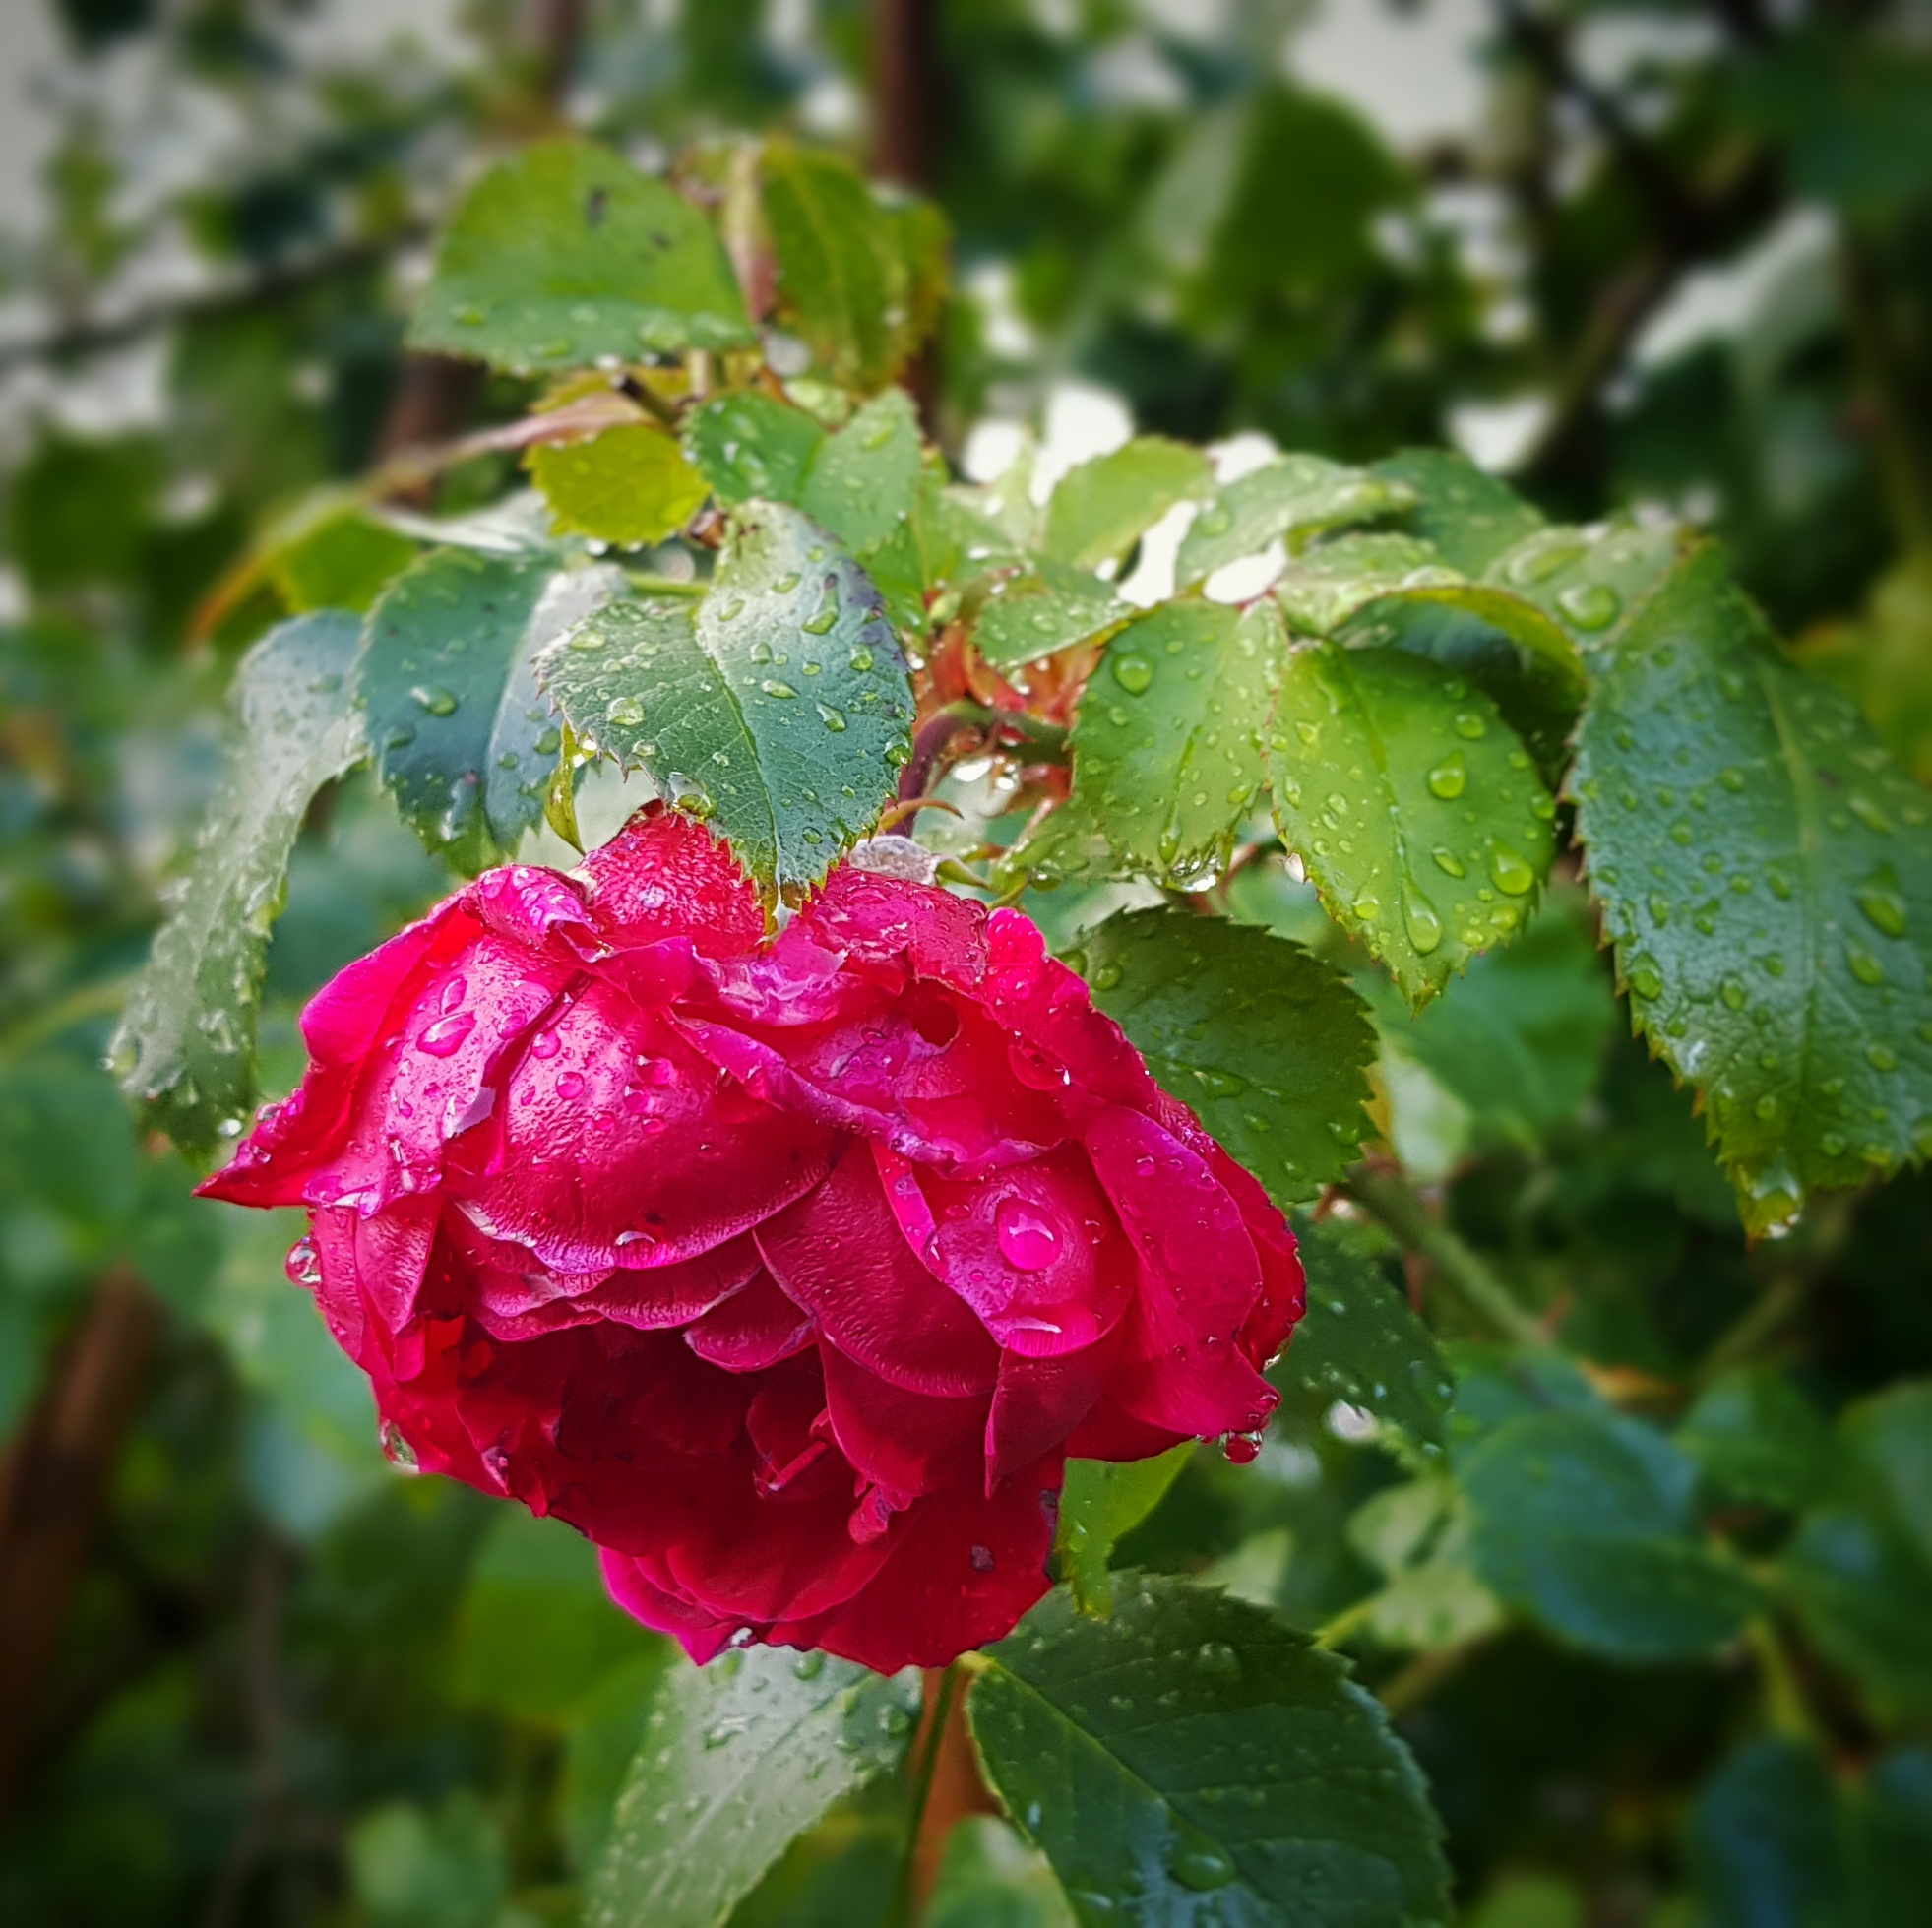 Day 237 - August 25: After the rain